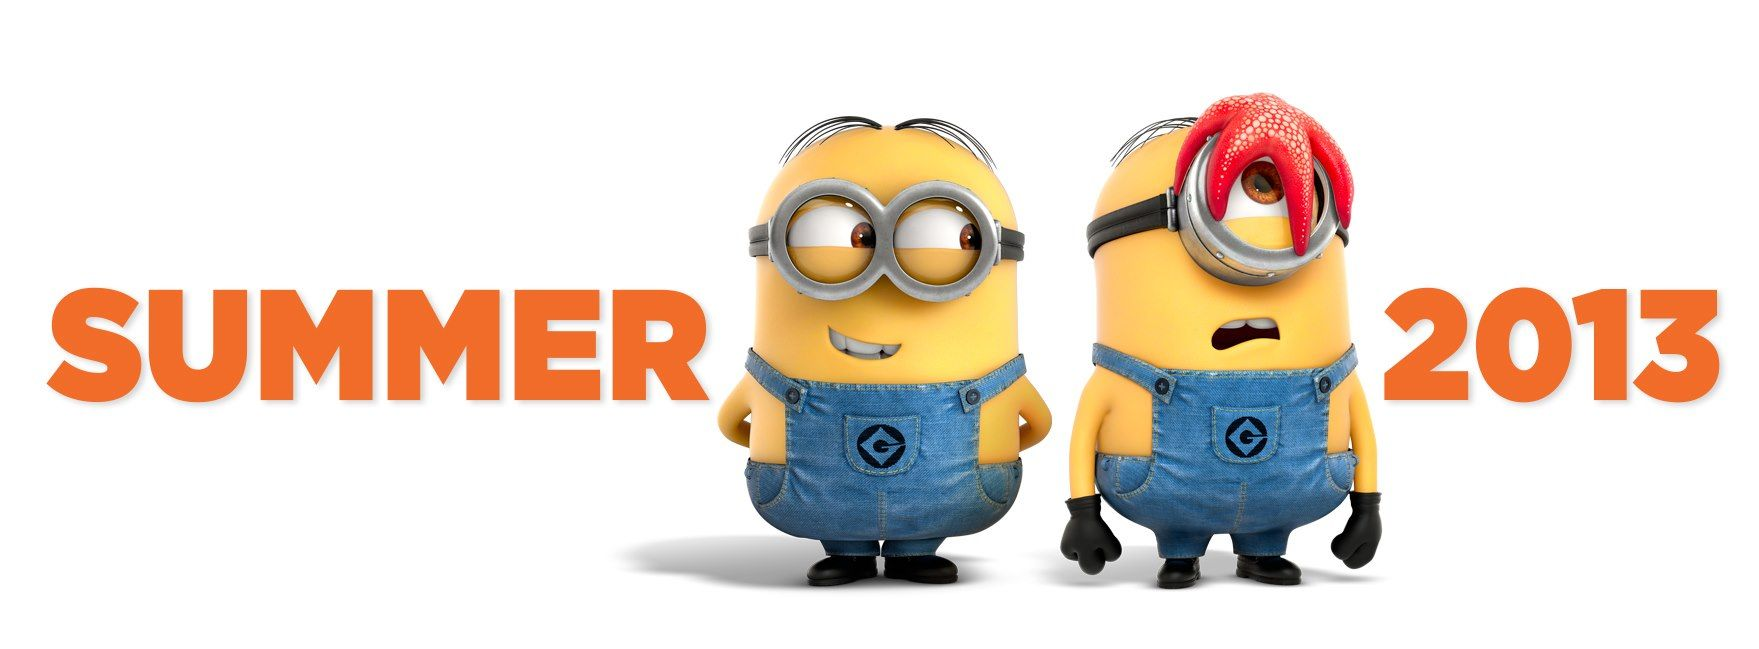 Watch Despicable Me 2 Online Full Movie Free | Minions minions